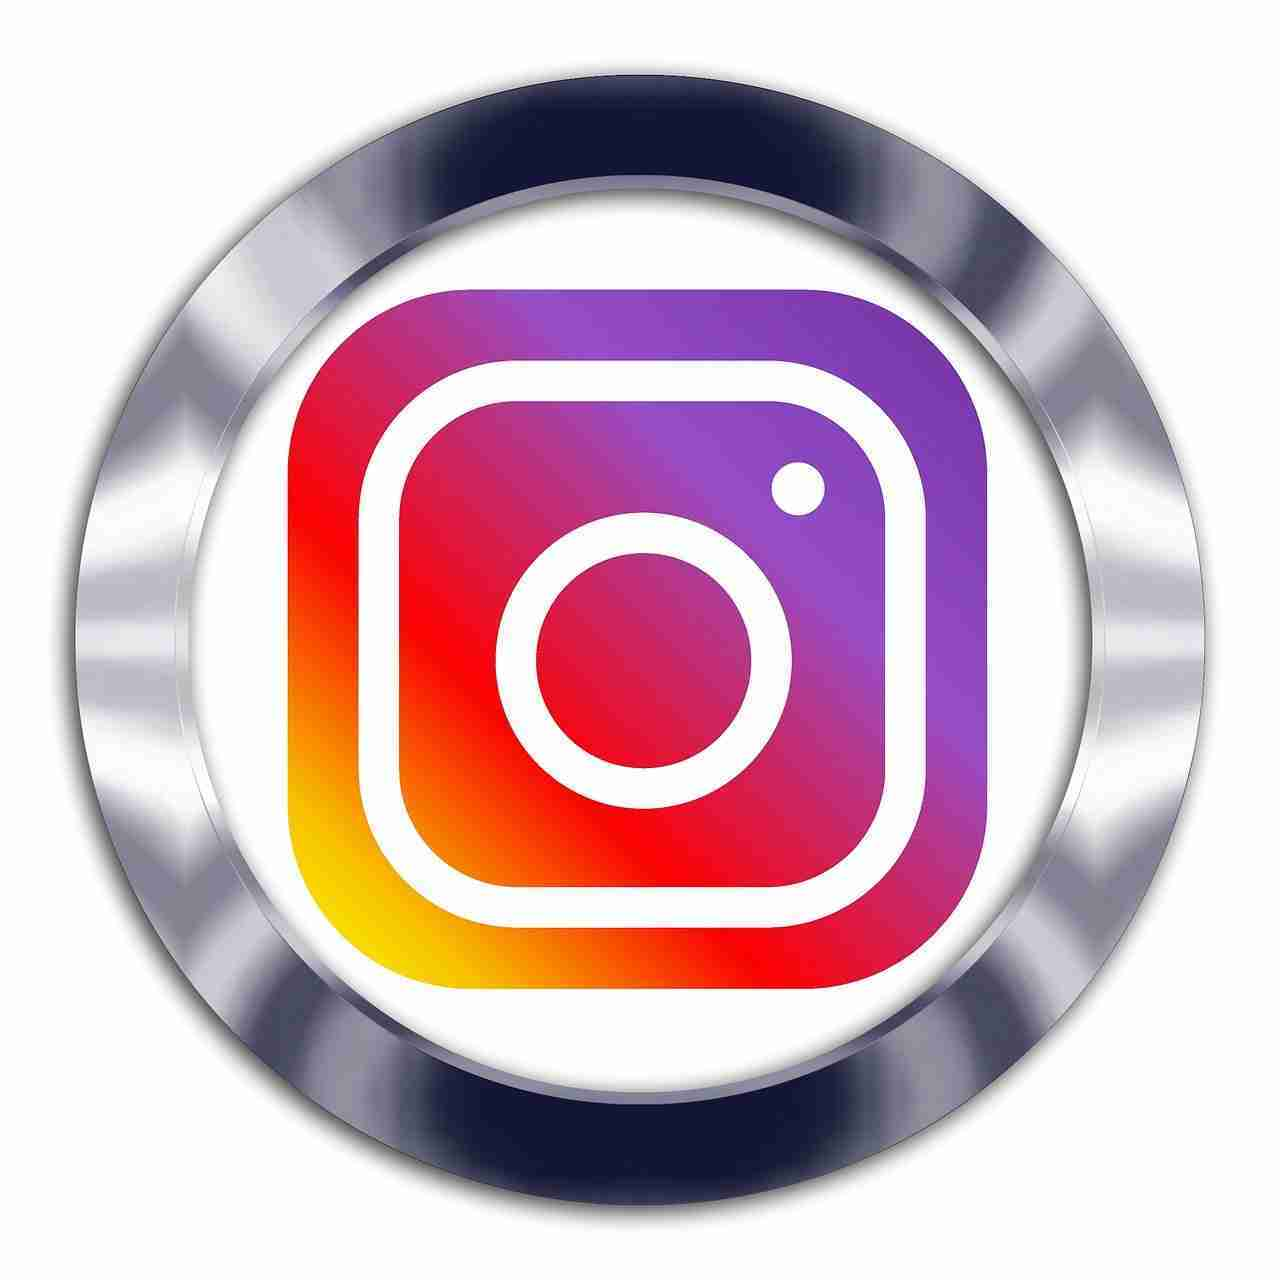 You are currently viewing Come vedere le tue storie archiviate su Instagram